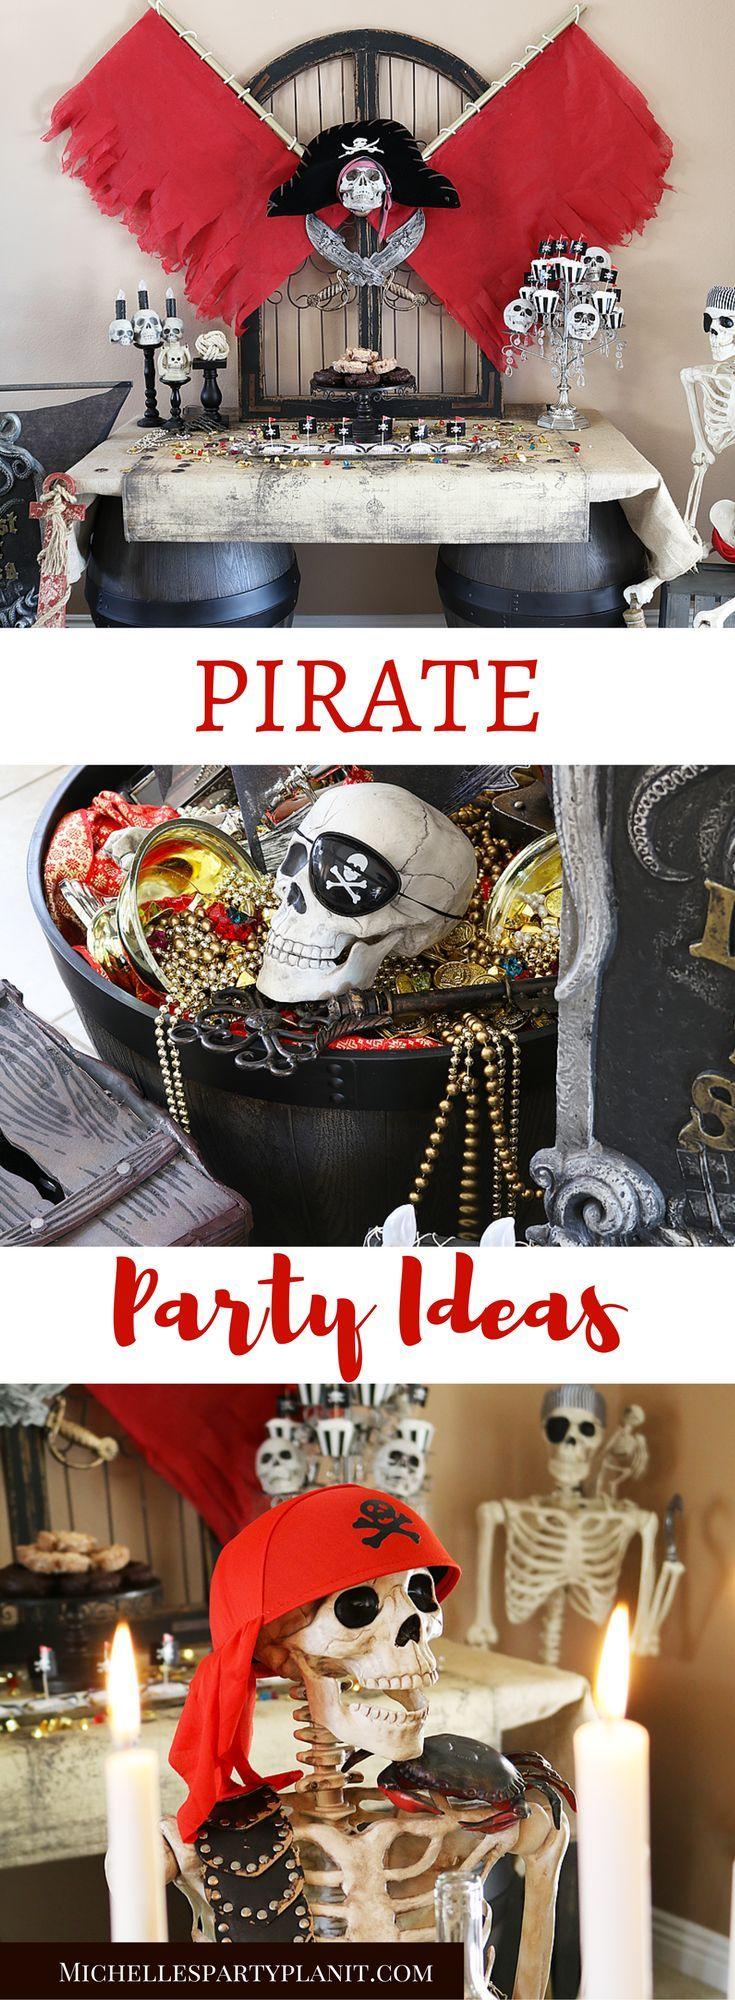 Pirate Party Ideas including a DIY Pirate Backdrop, Pirate Ship Mast and Pirate Candle Holders. Step by Step tutorial by Michelle's Party Plan-It for Oriental Trading #diypiratecostumeforkids